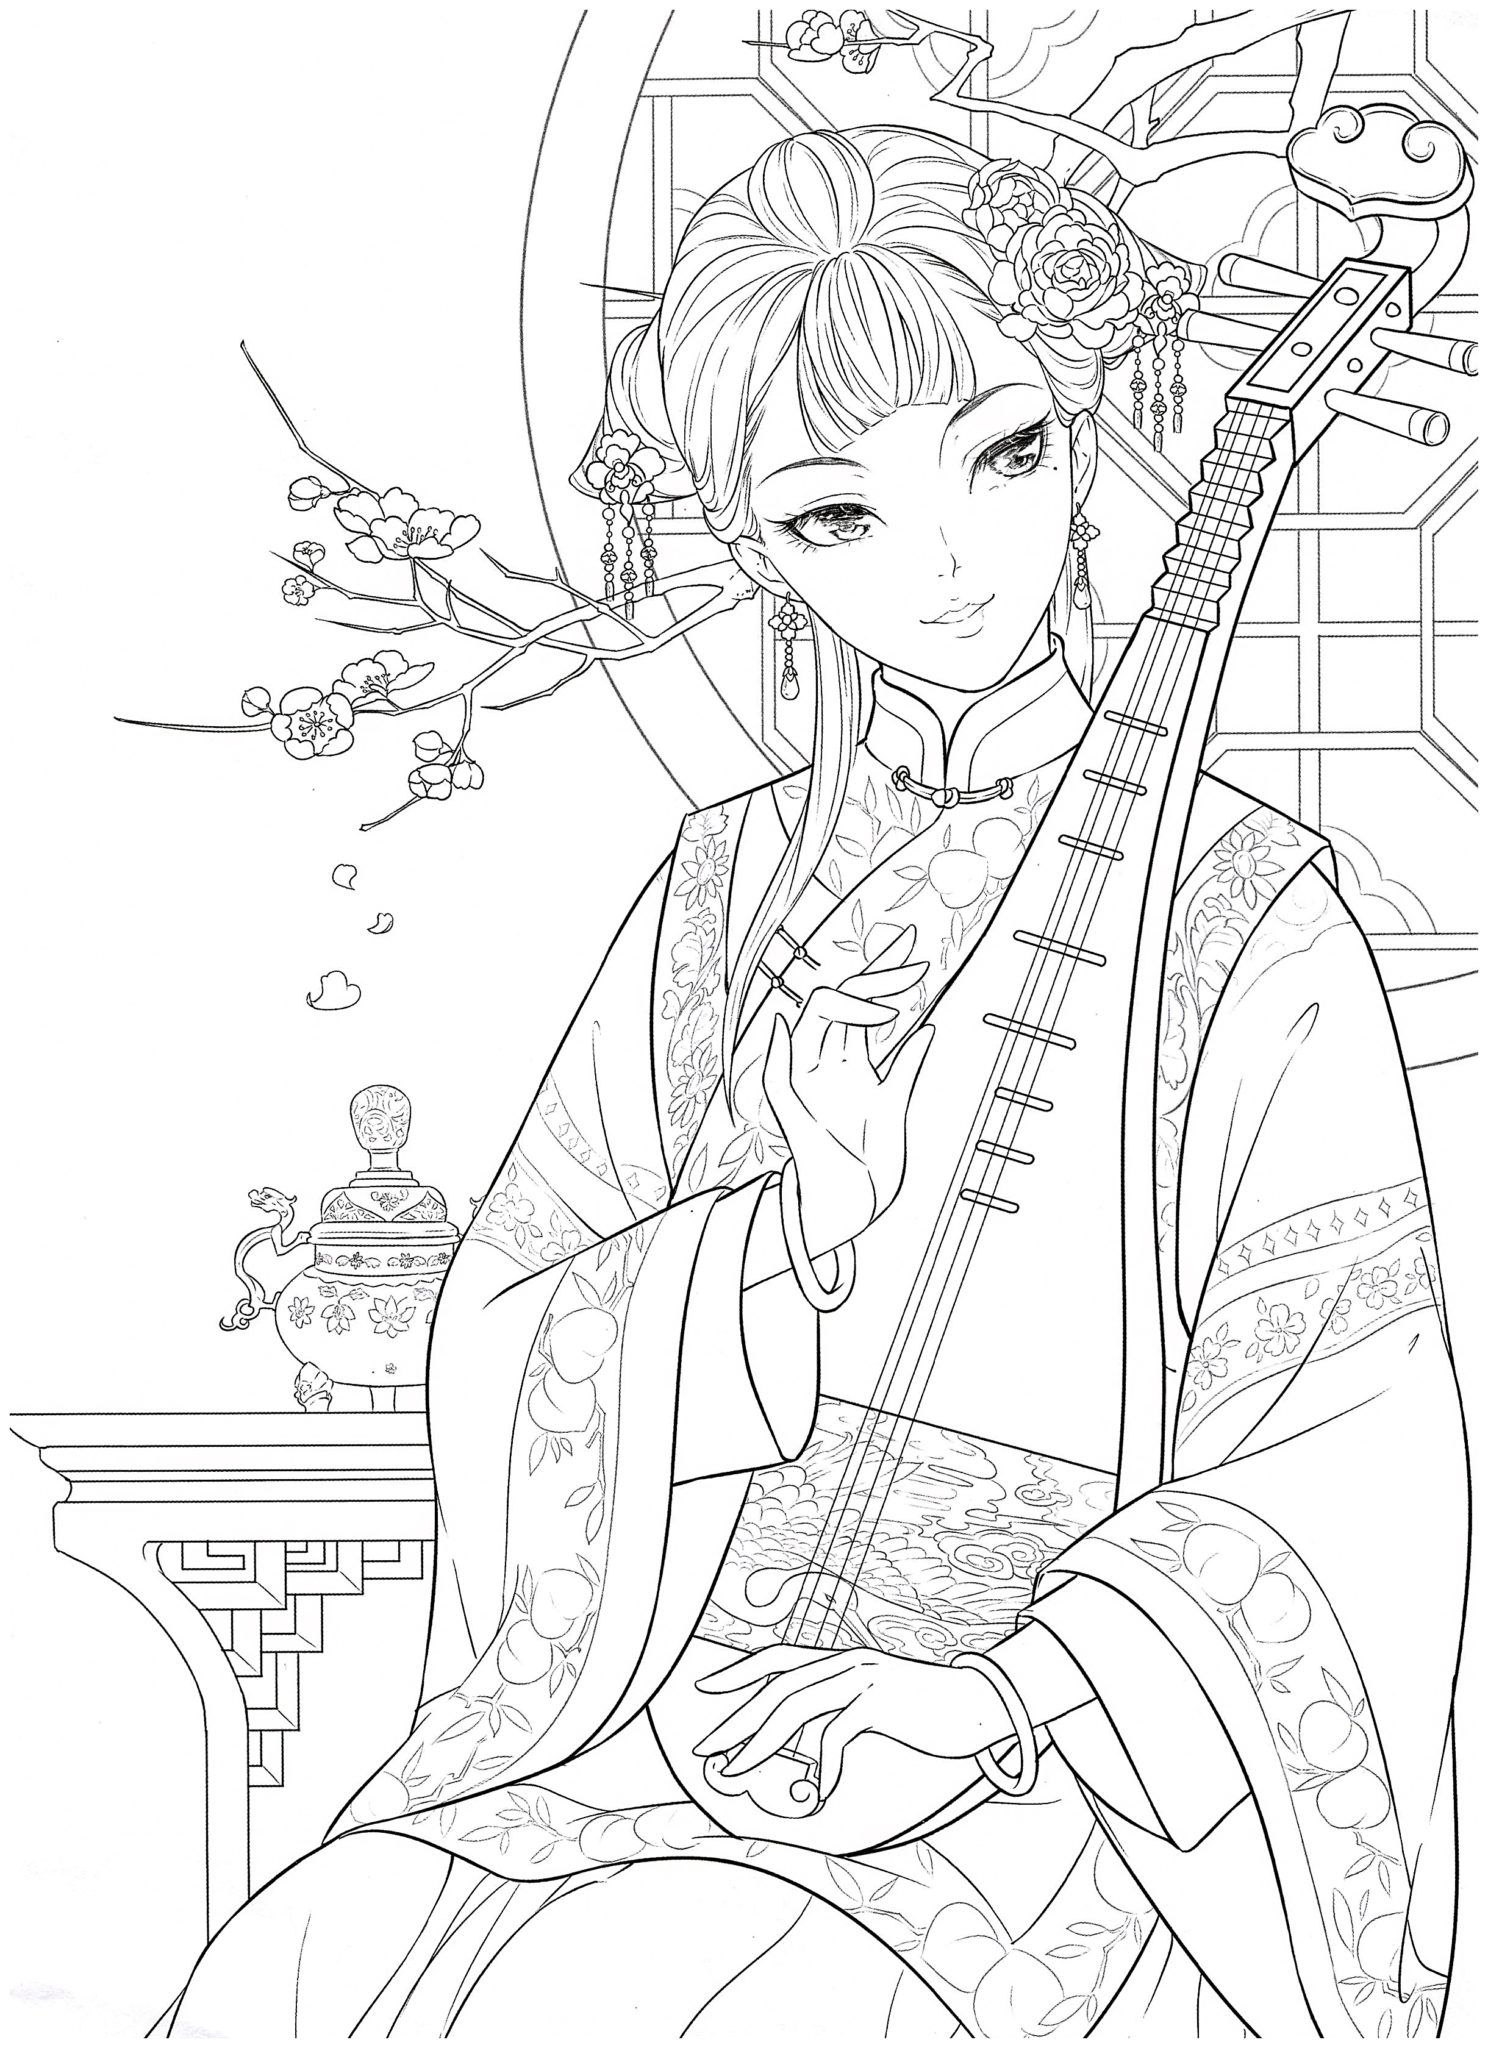 Chinese Portrait Coloring Ebook Vol 12 Kayliebooks Coloring Book Art People Coloring Pages Cute Coloring Pages [ 2048 x 1488 Pixel ]